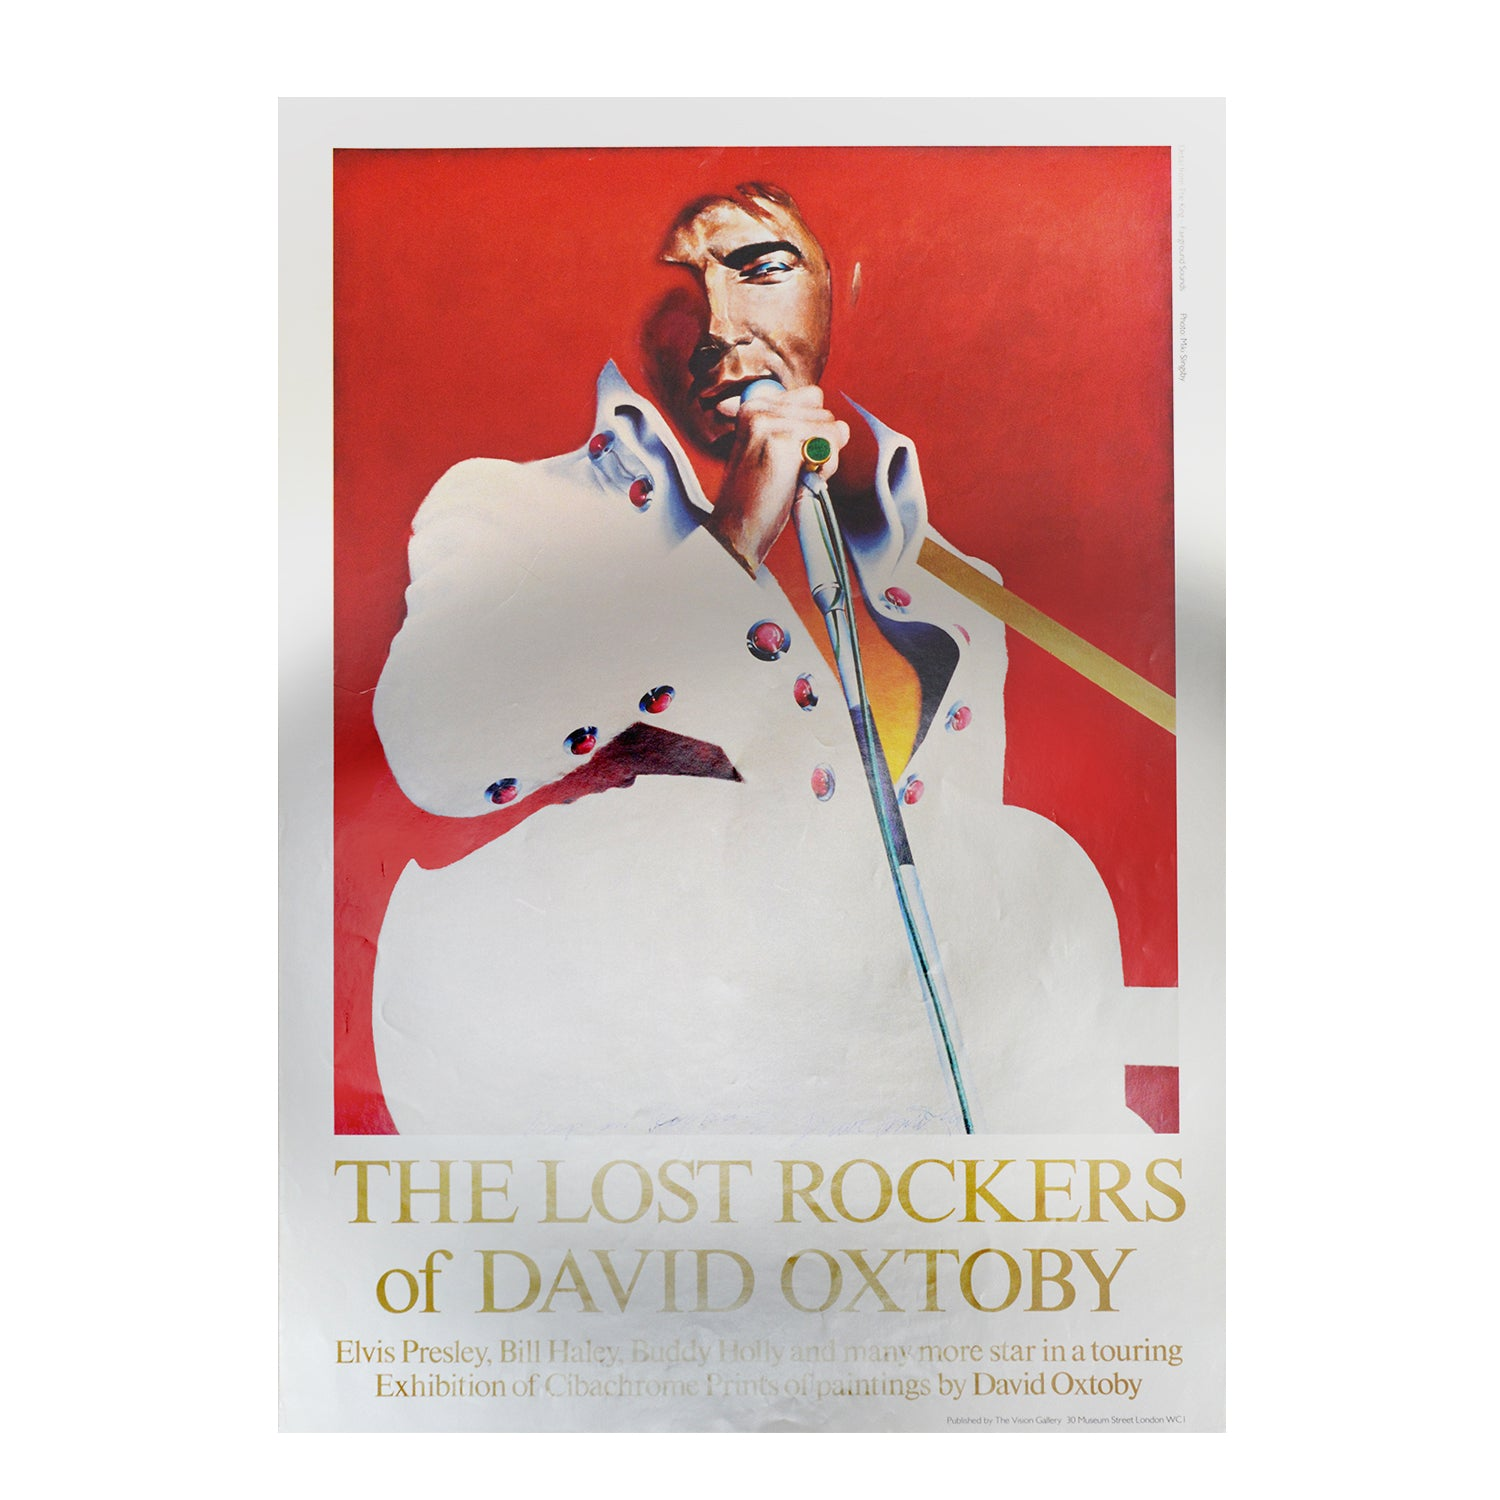 The lost rockers of David Oxtoby